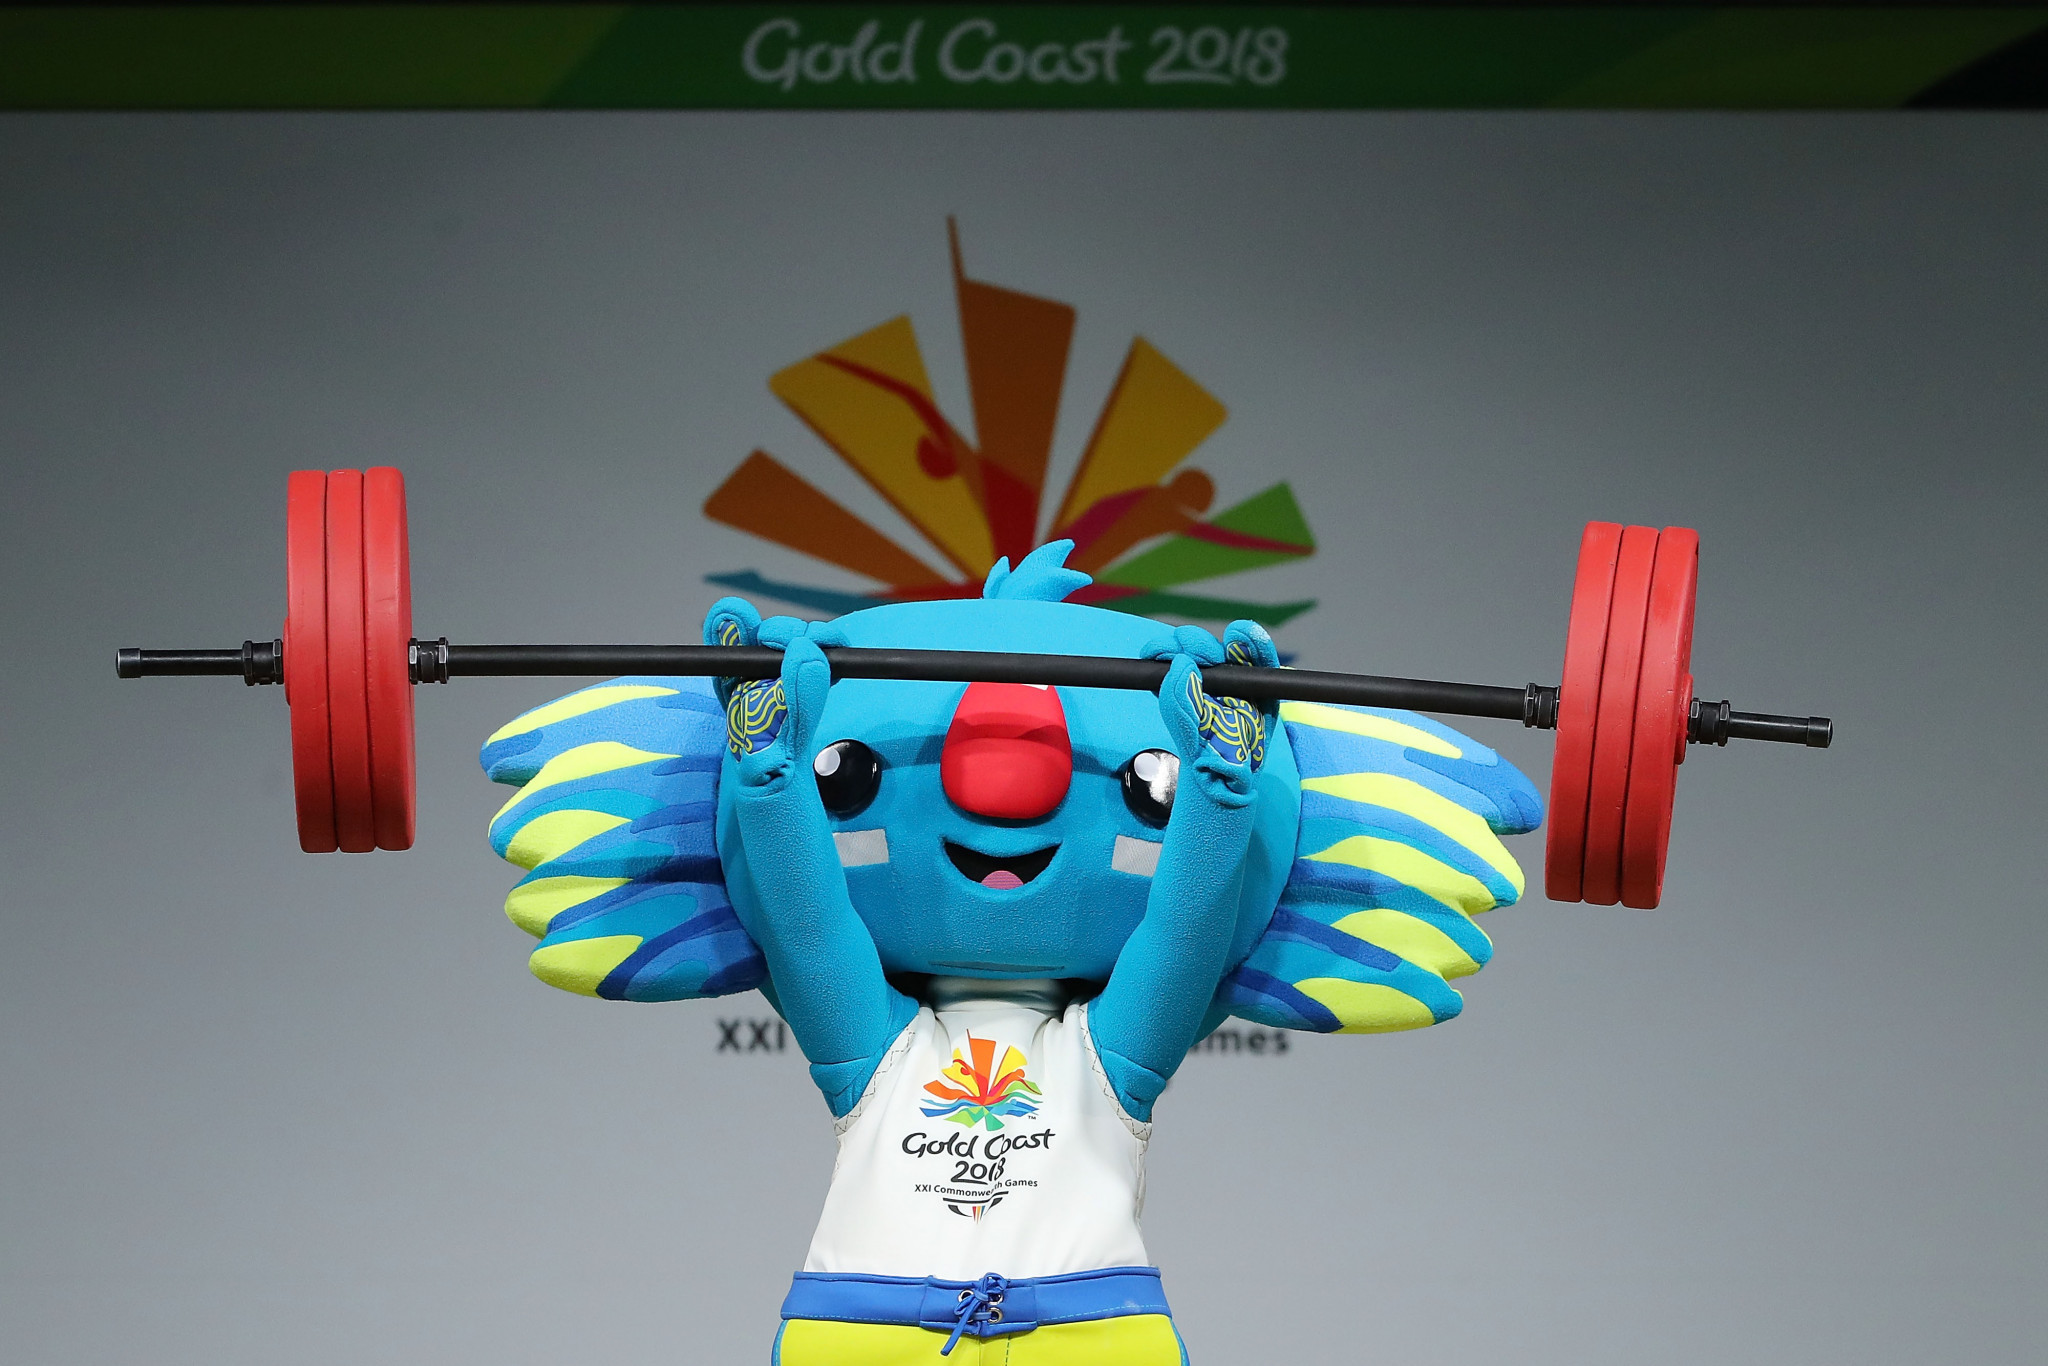 Gold Coast in Australia hosted the 2018 Commonwealth Games ©Getty Images